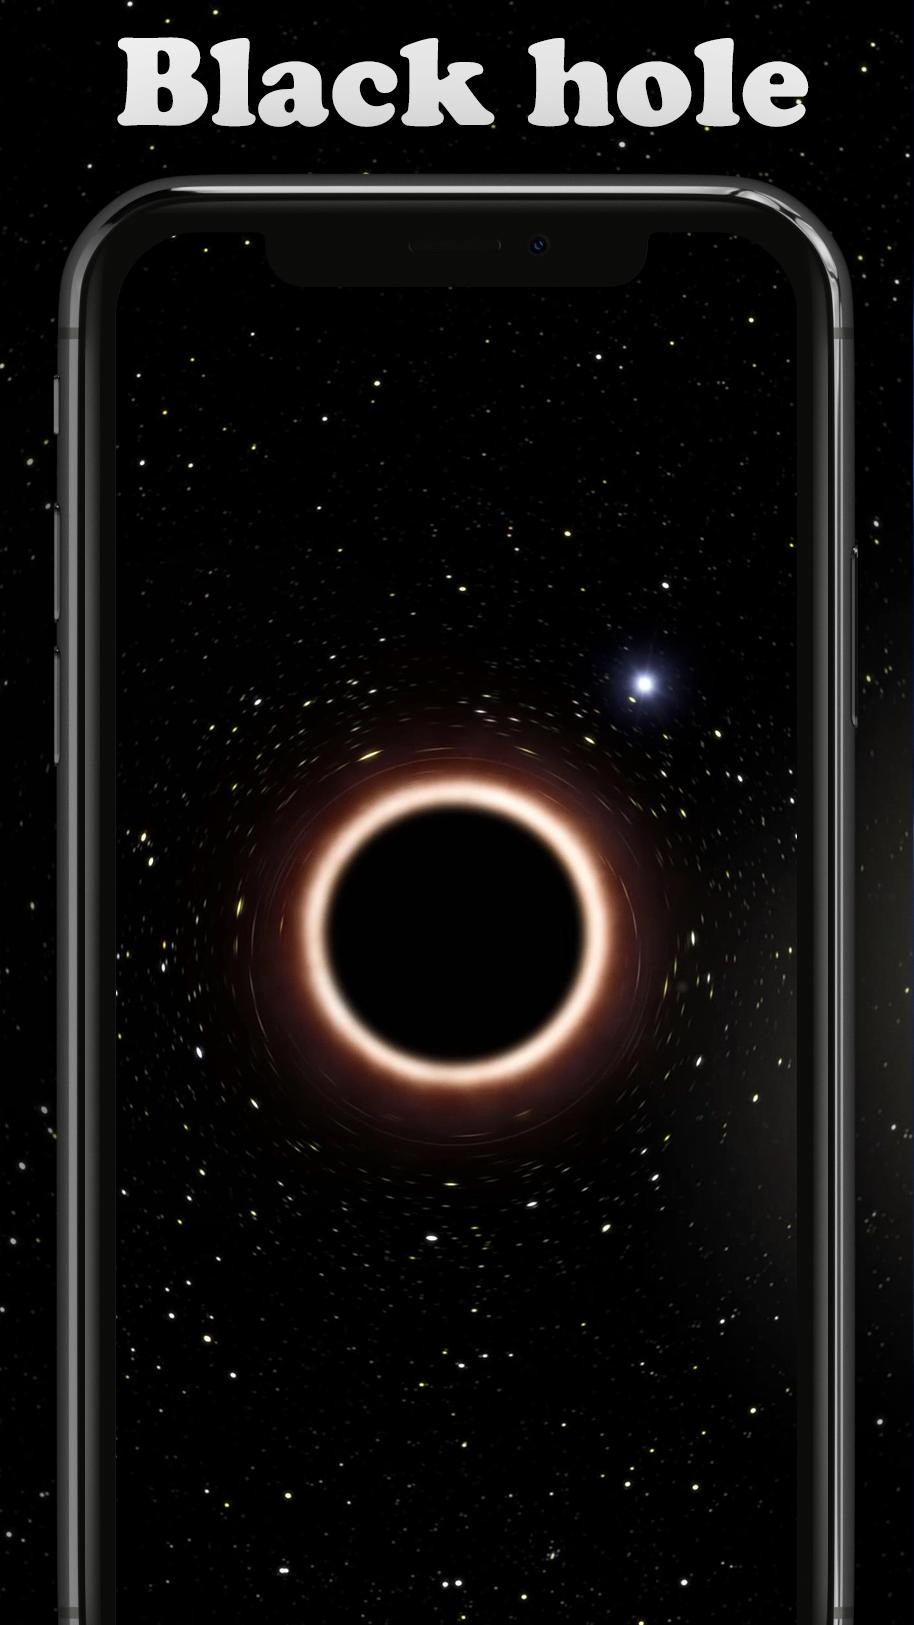 Supermassive Black Hole Live Wallpaper Gratis For Android Apk